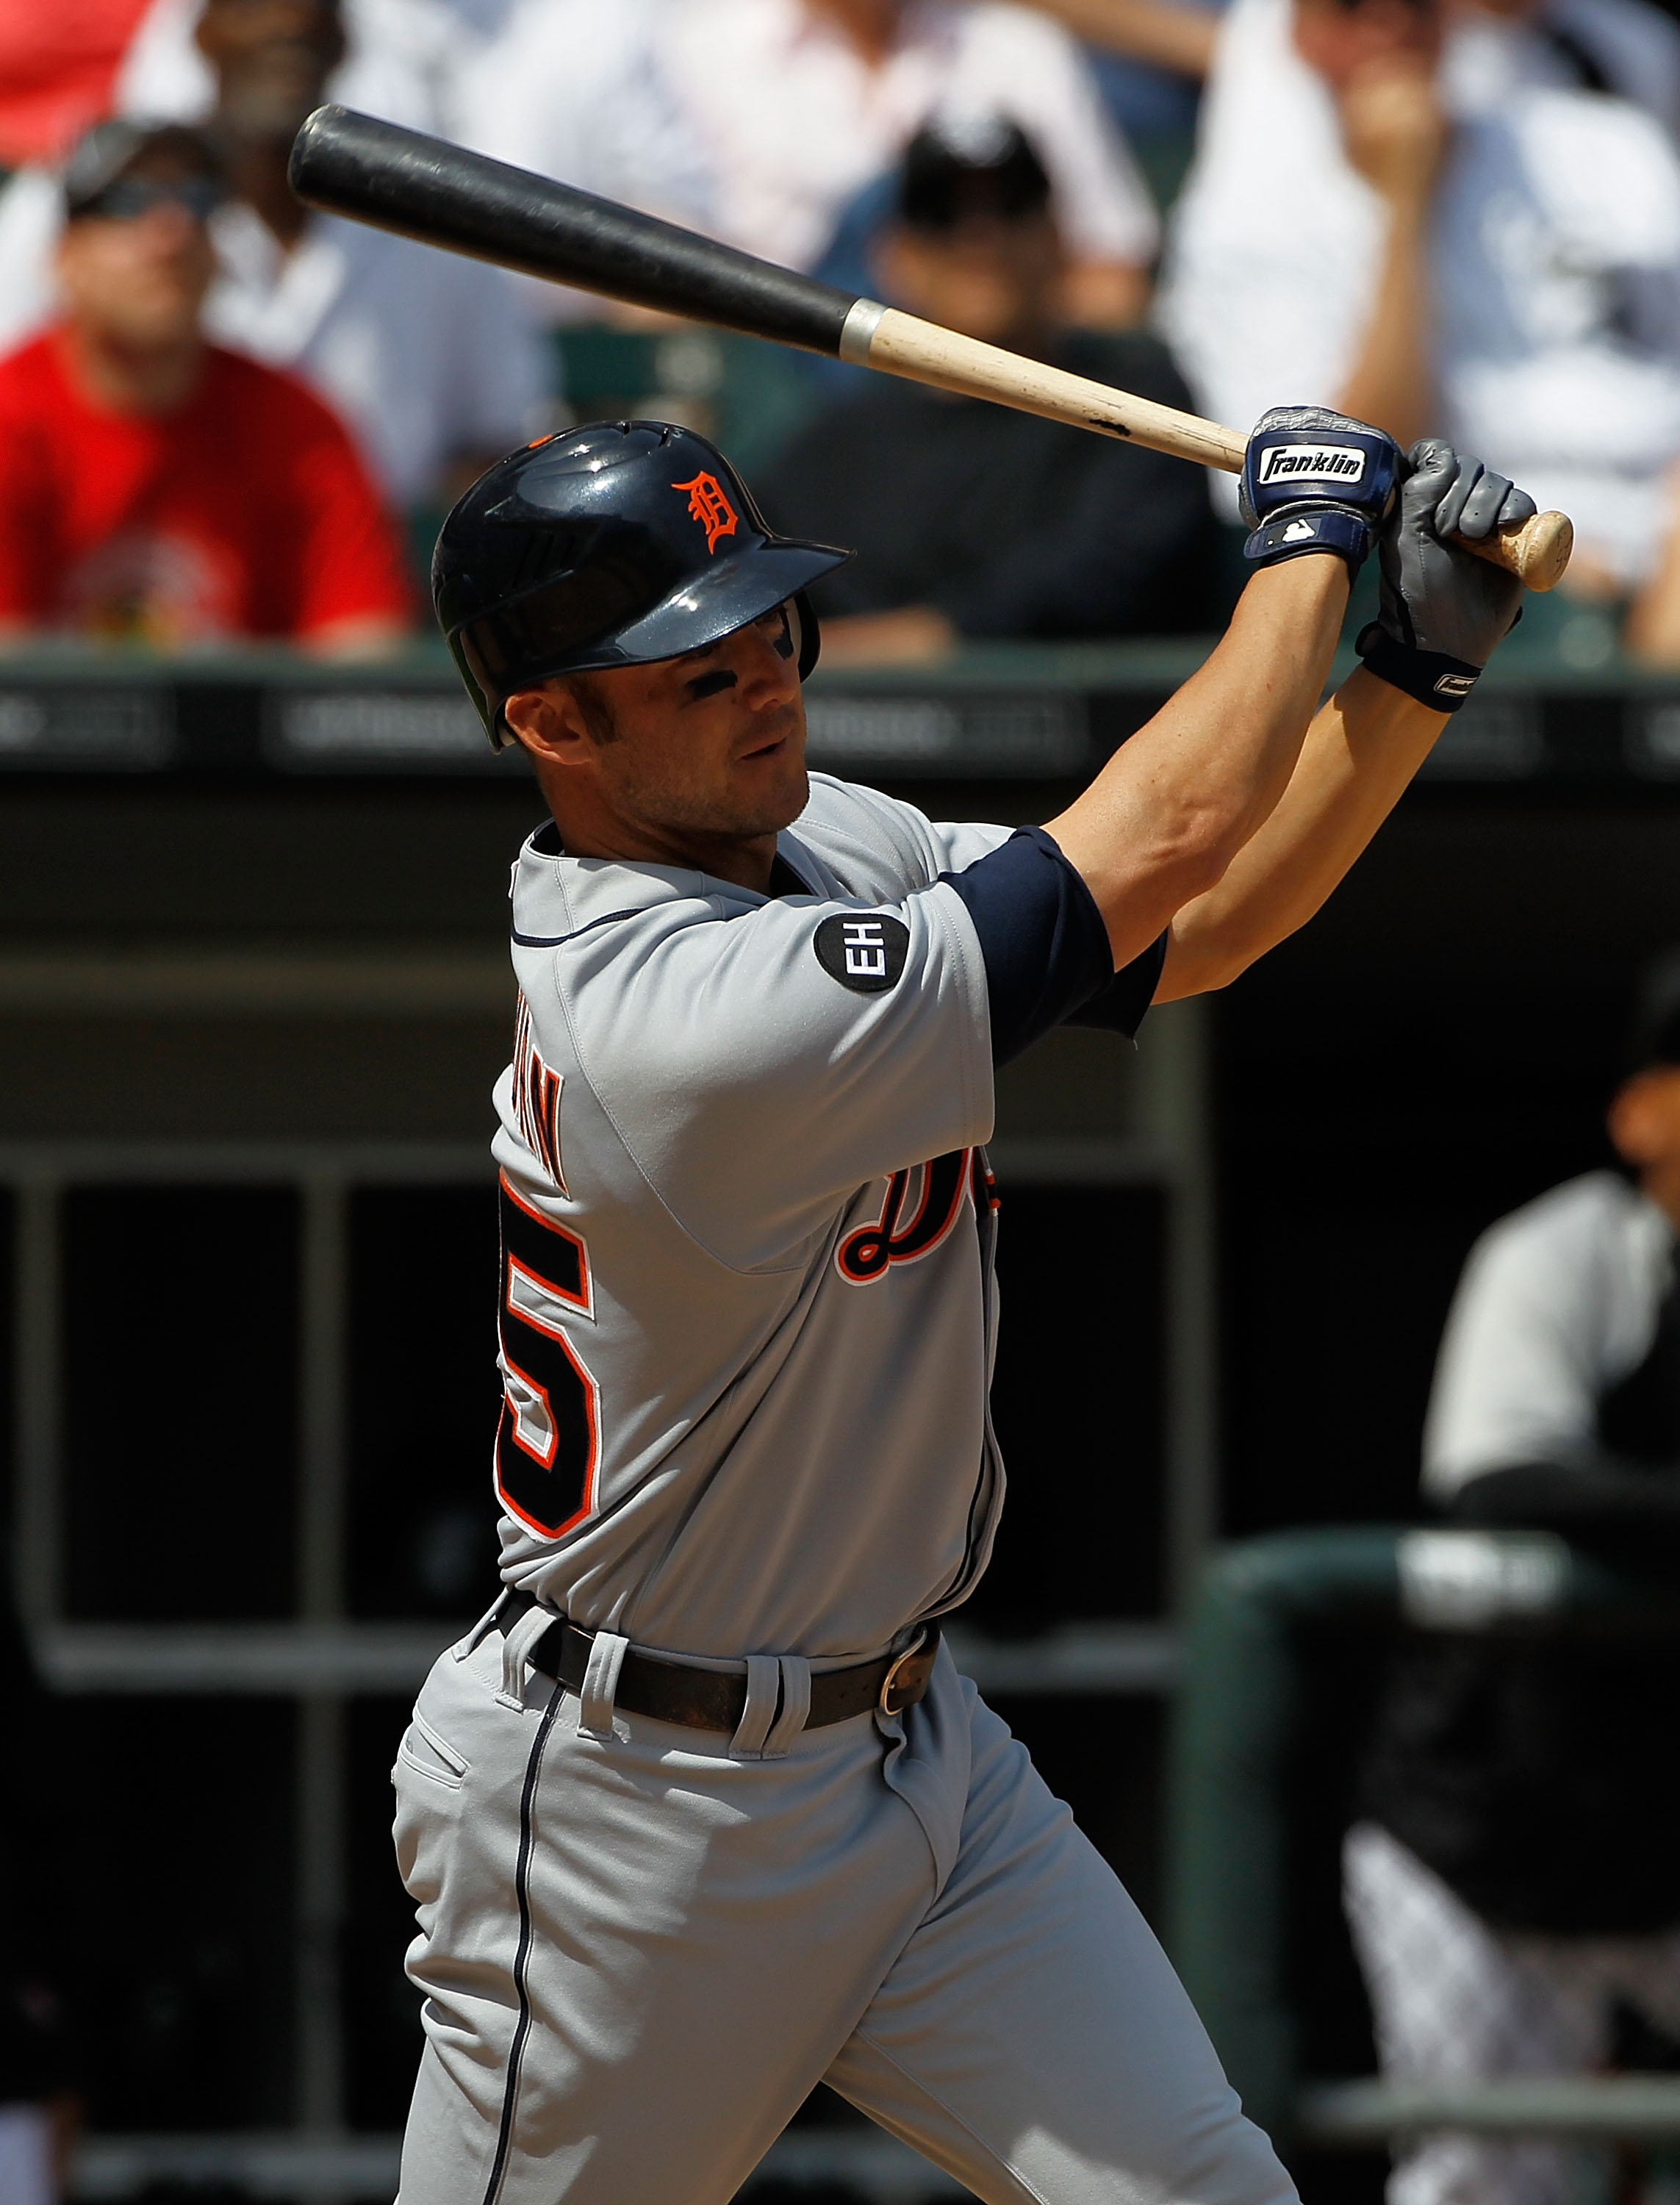 CHICAGO - JUNE 10: Ryan Raburn #25 of the Detriot Tigers takes a swing against the Chicago White Sox at U.S. Cellular Field on June 10, 2010 in Chicago, Illinois. The White Sox defeated the Tigers 3-0.  (Photo by Jonathan Daniel/Getty Images)